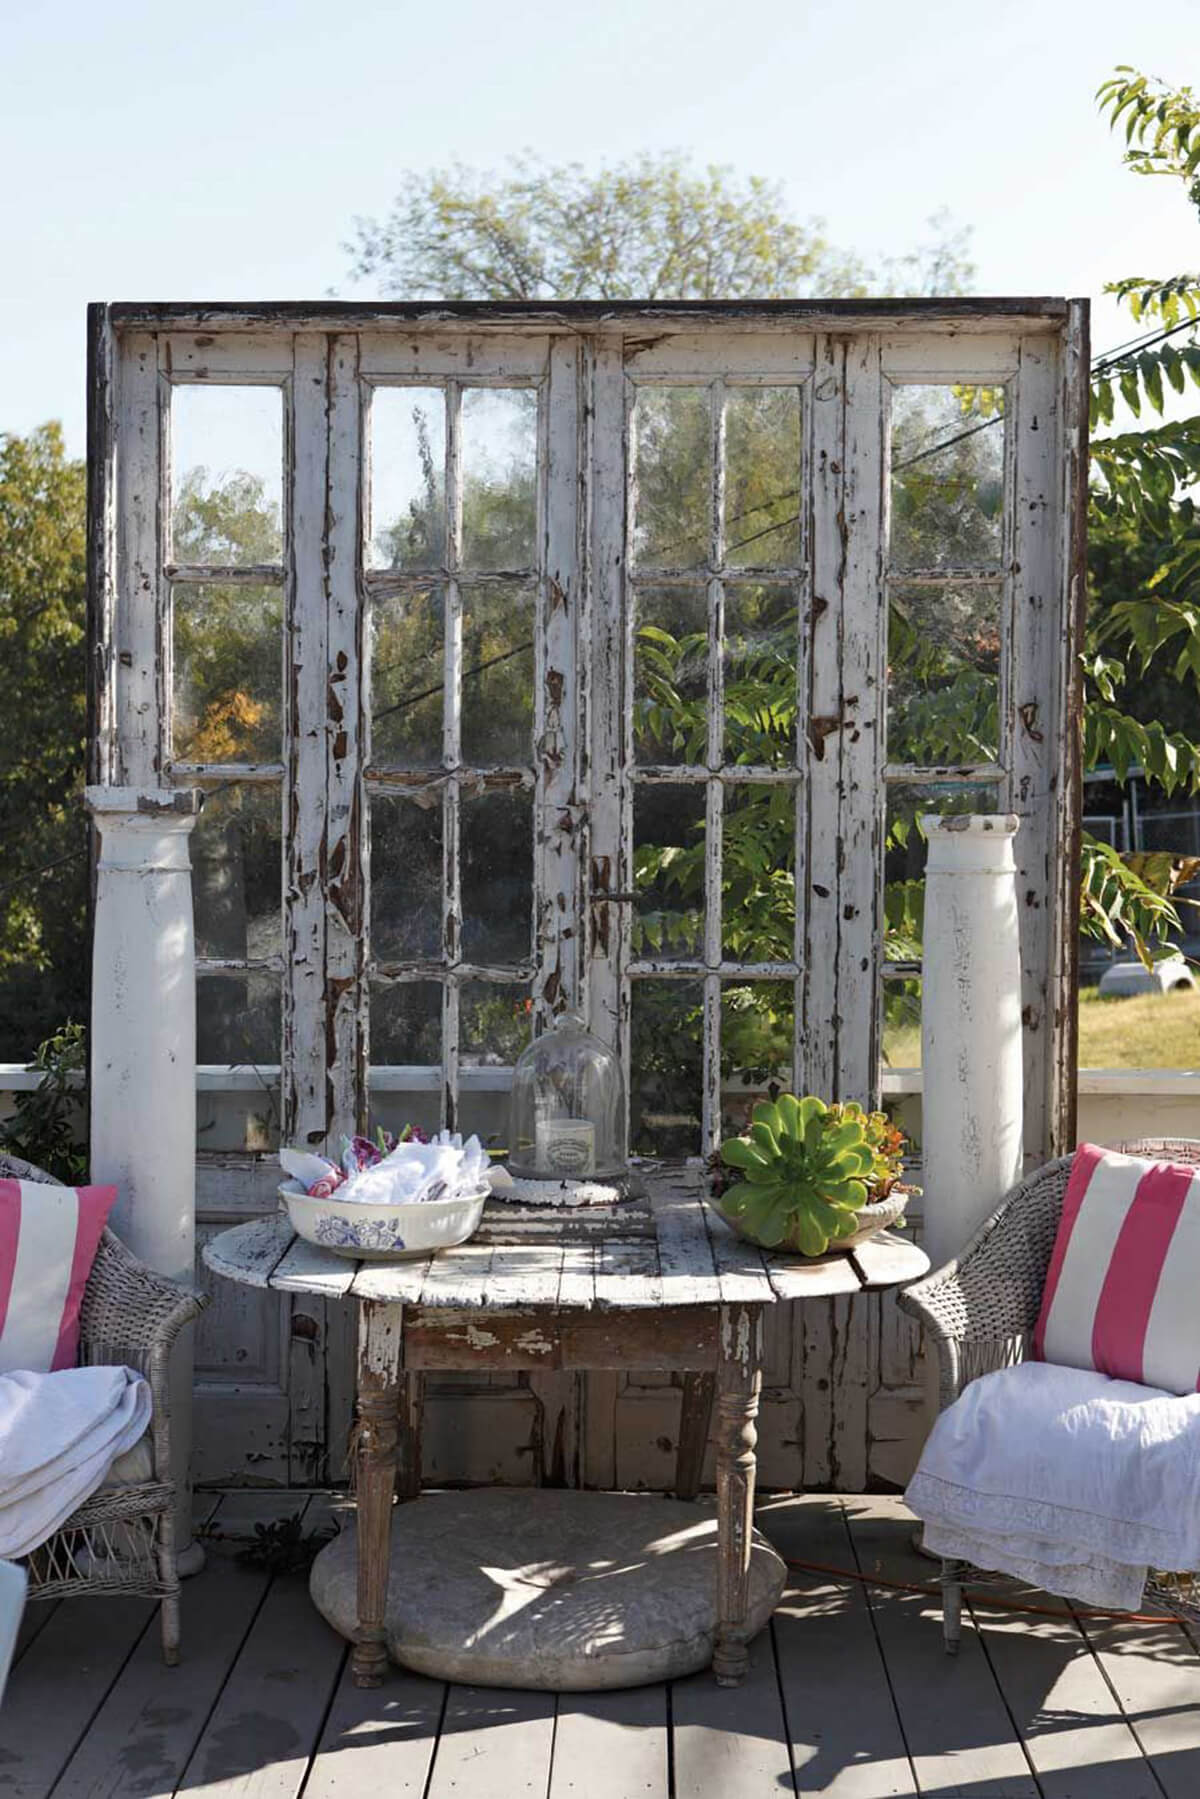 Graceful Recycled French Doors as a Divider